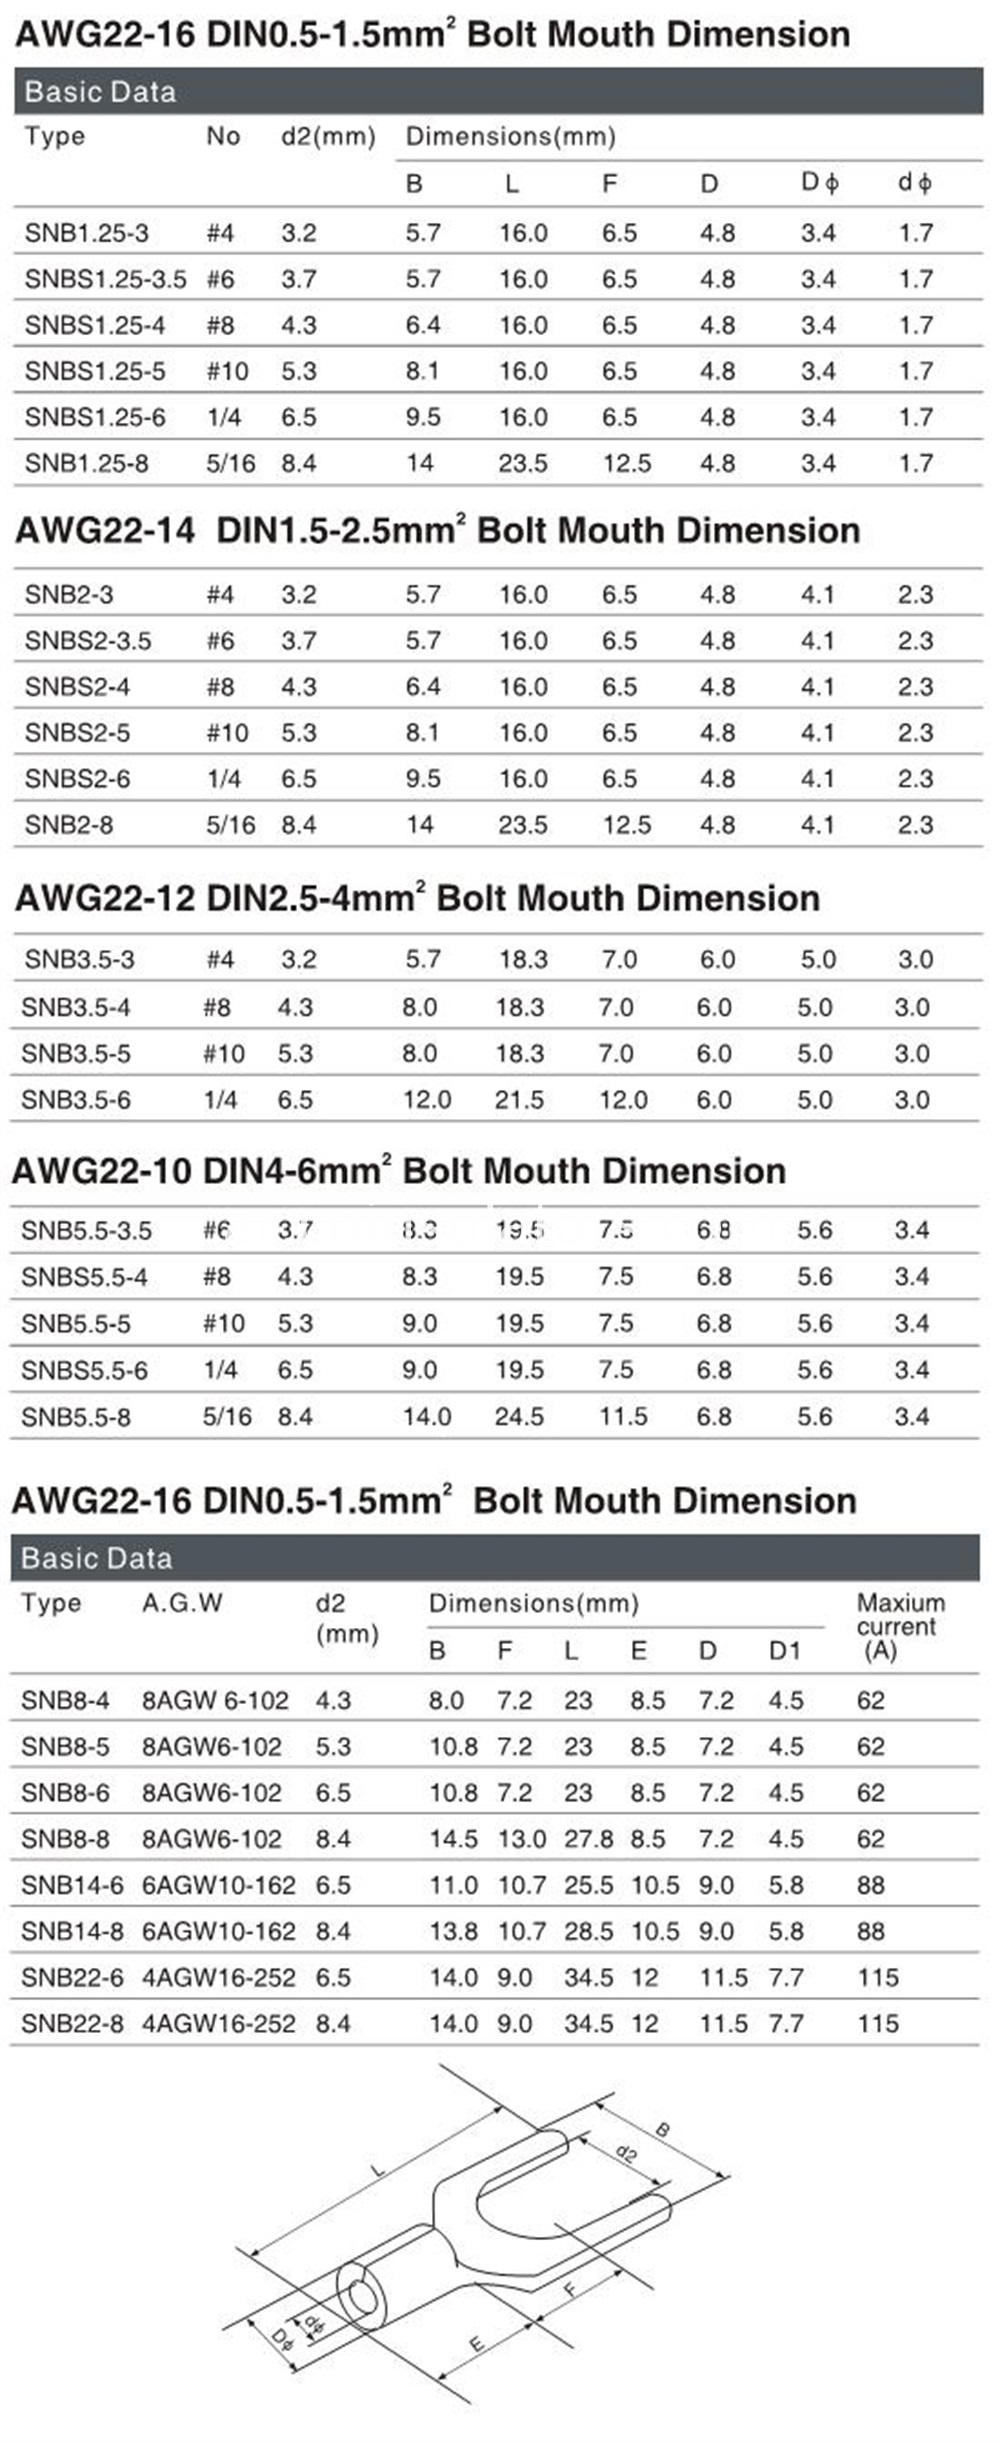 AWG22 bolt mouth dimesion